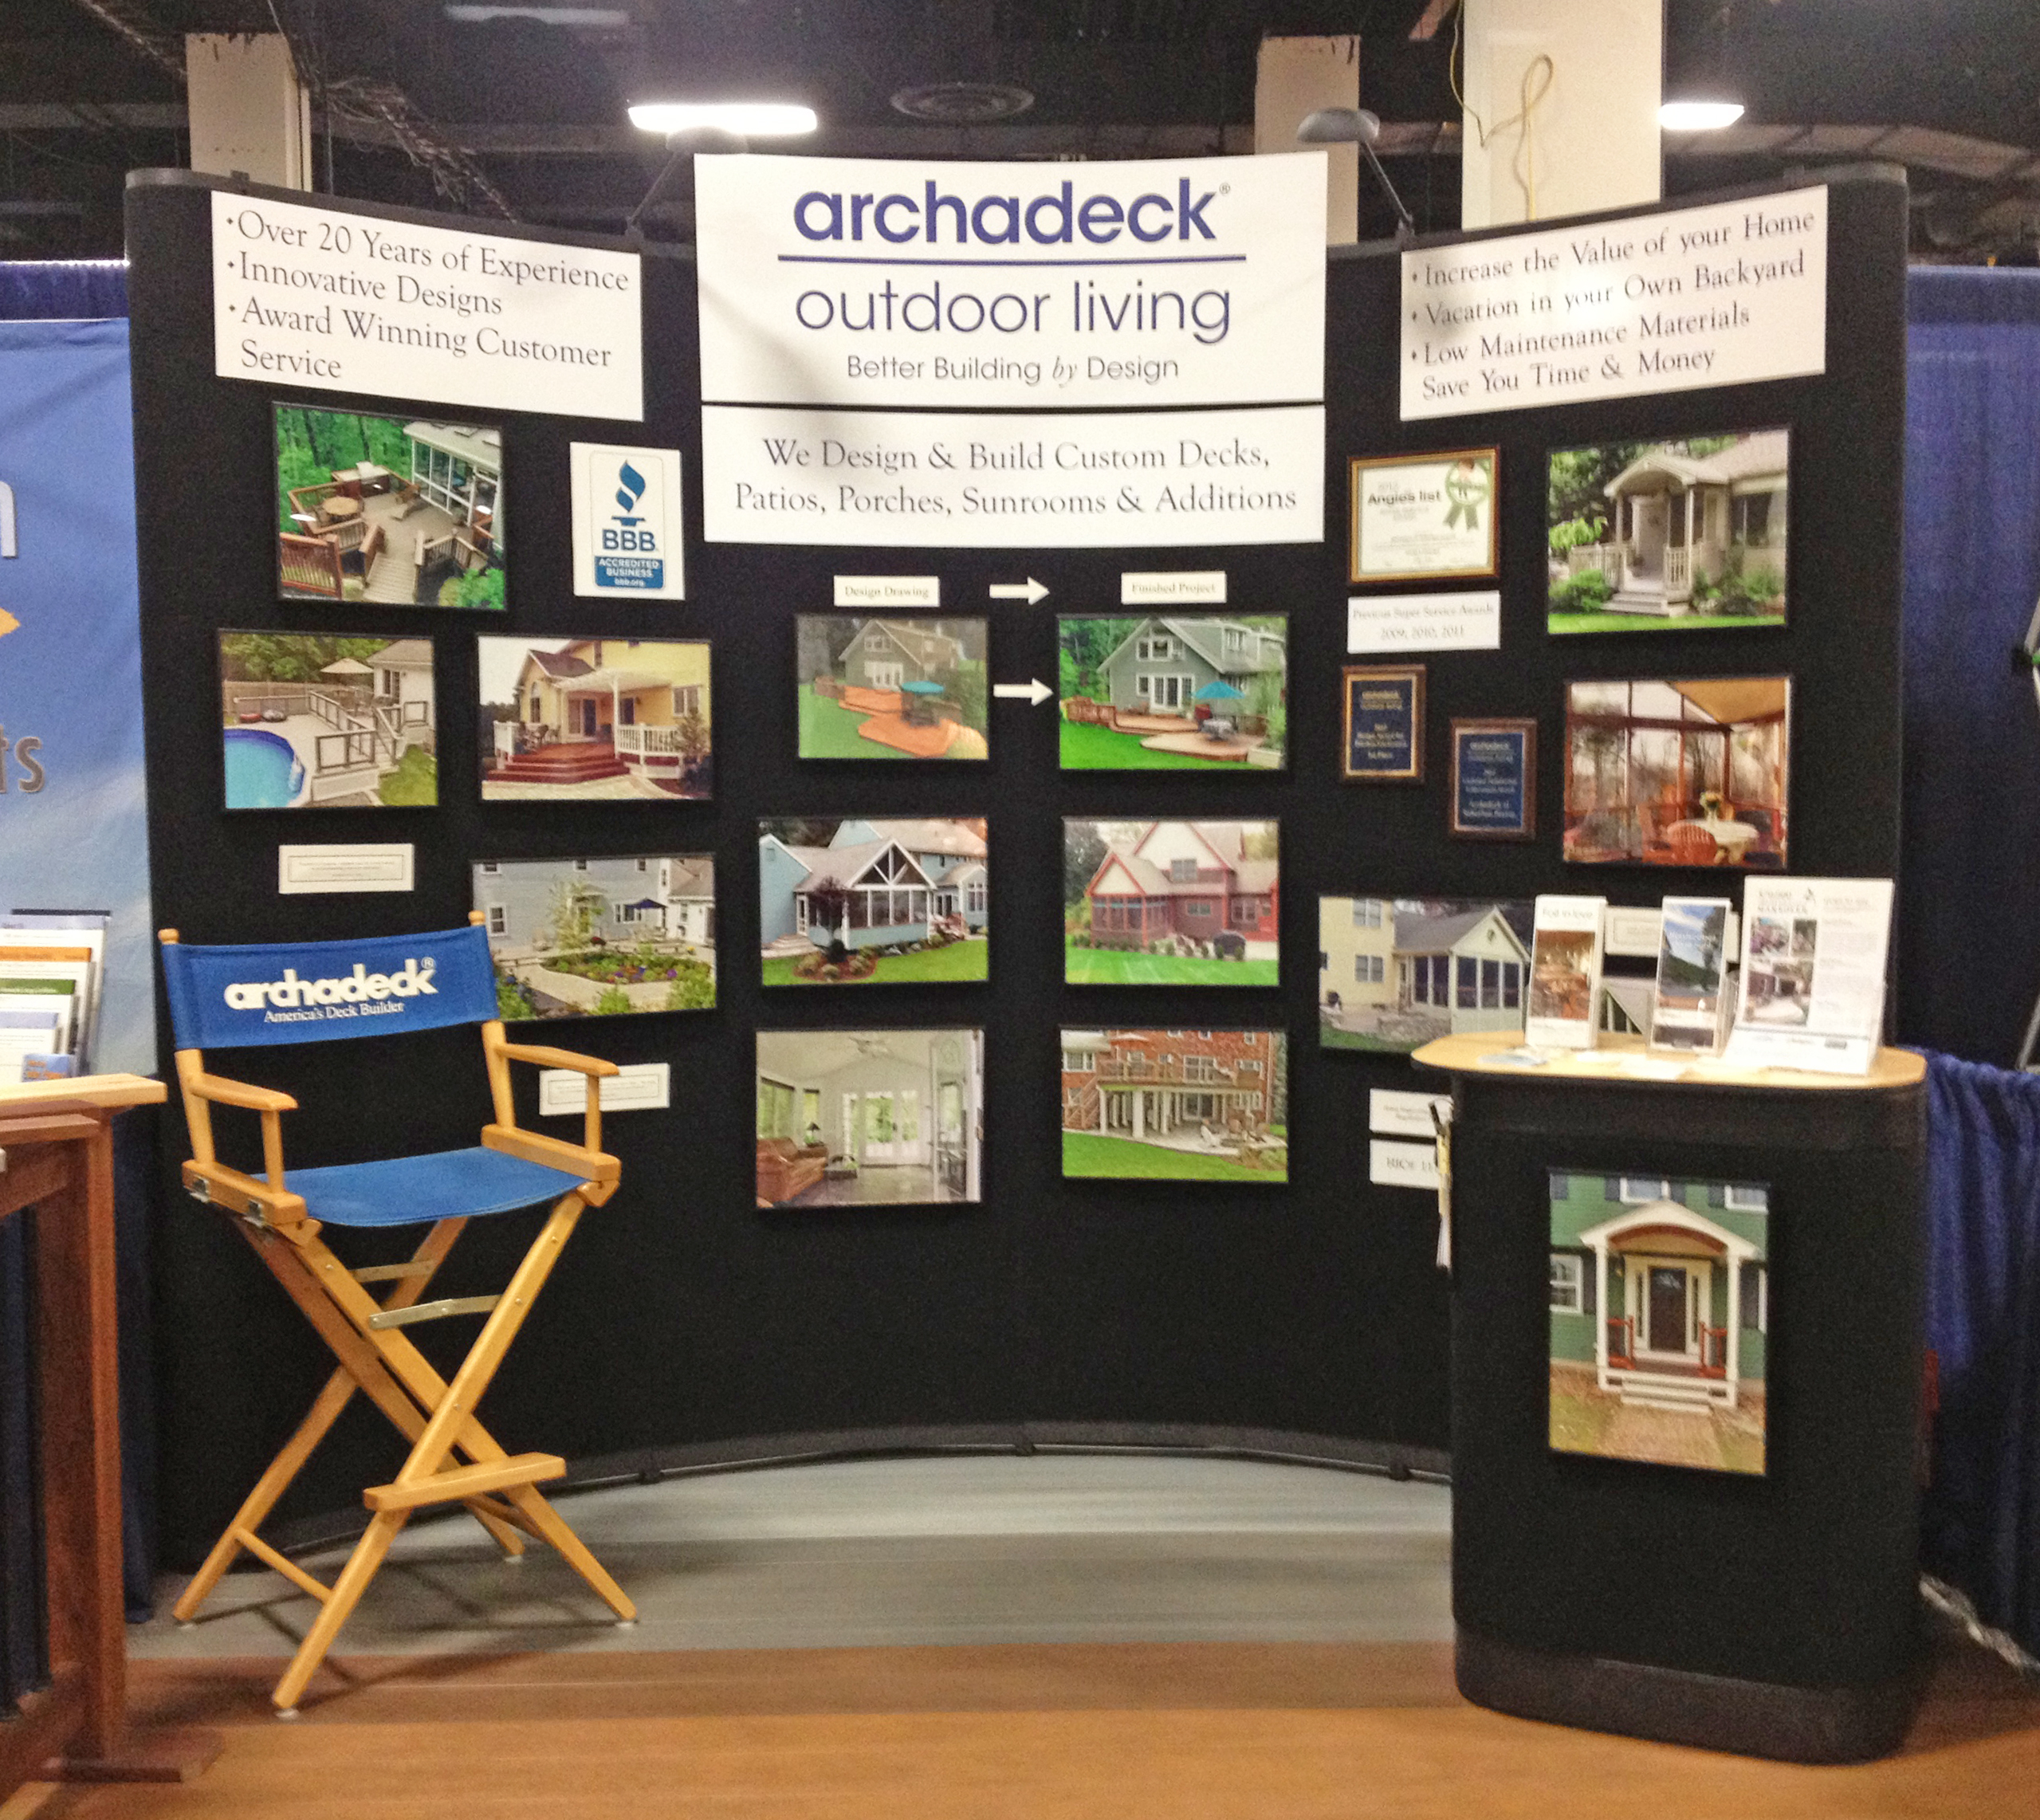 Home Expo And Design Home And Trade Shows Custom Decks Porches Patios